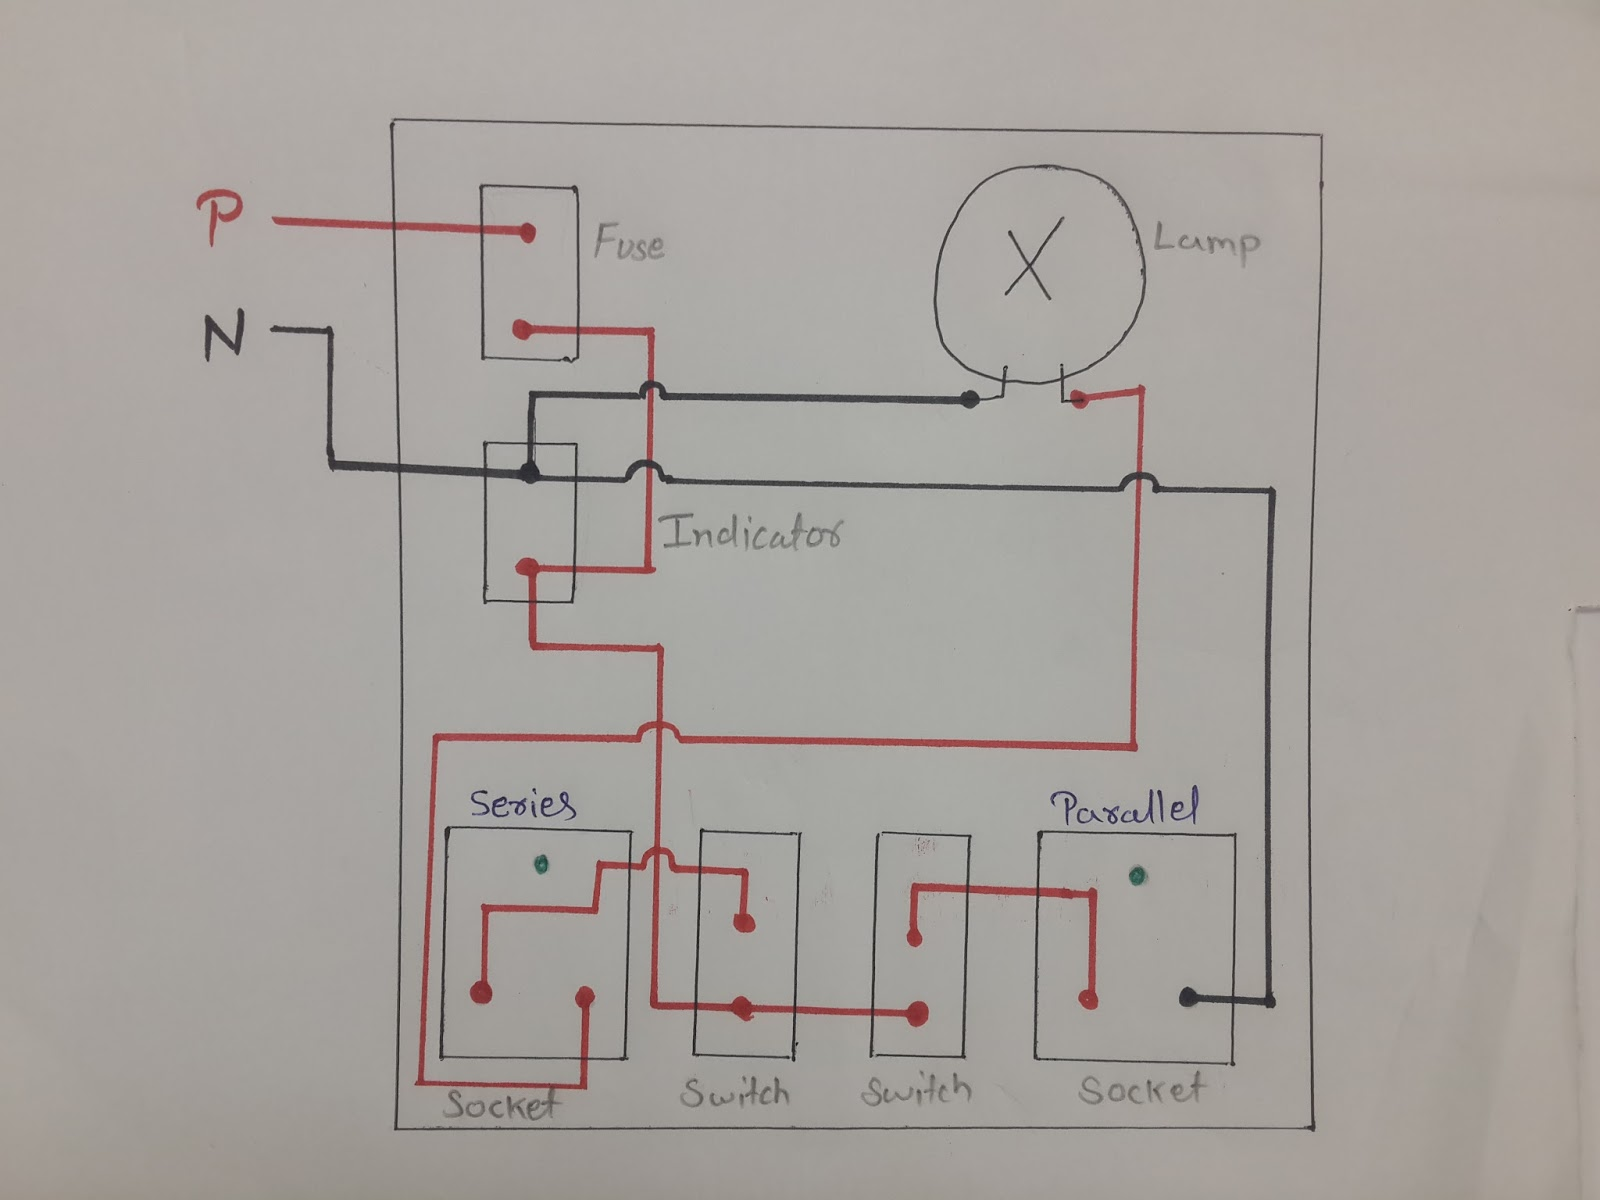 small resolution of circuit diagram of series test lamp wiring diagram used deepakkumar yadav how series parallel electrical testing